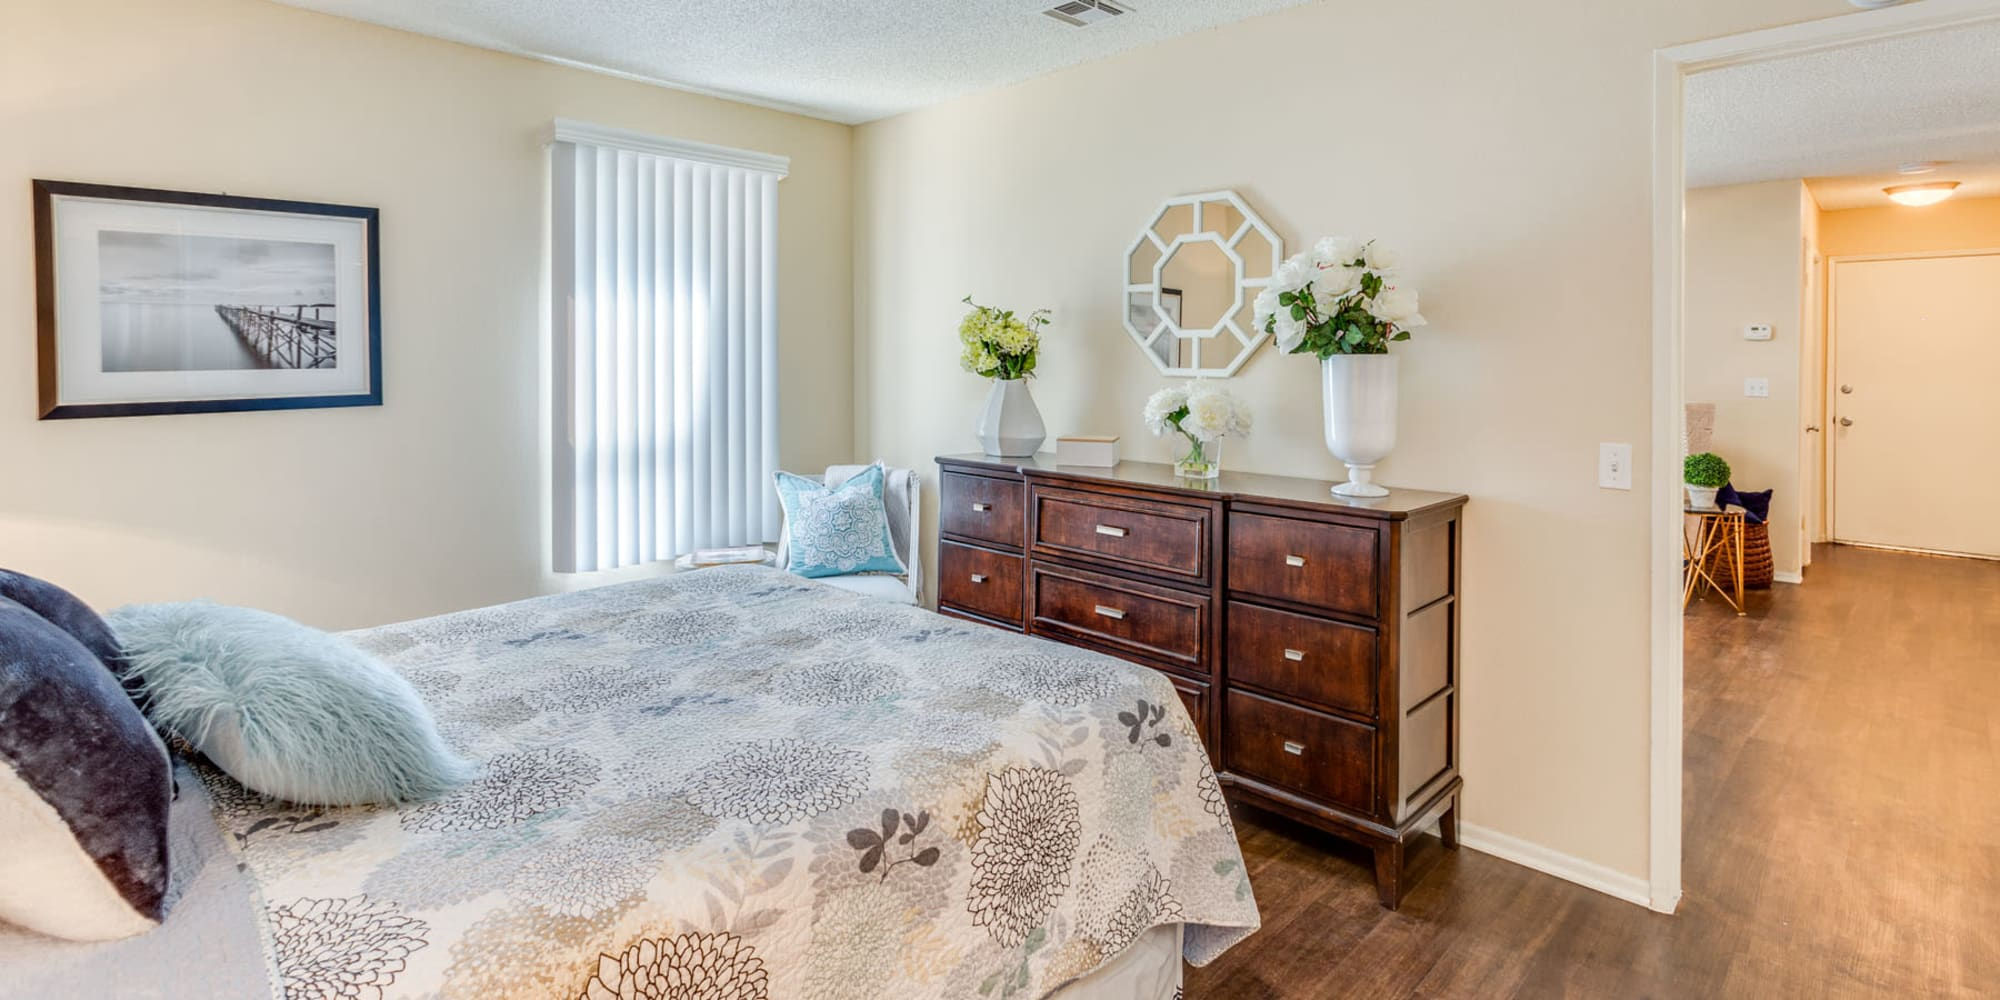 Bay window and classic furnishings in a model home's bedroom at Mountain Vista in Victorville, California